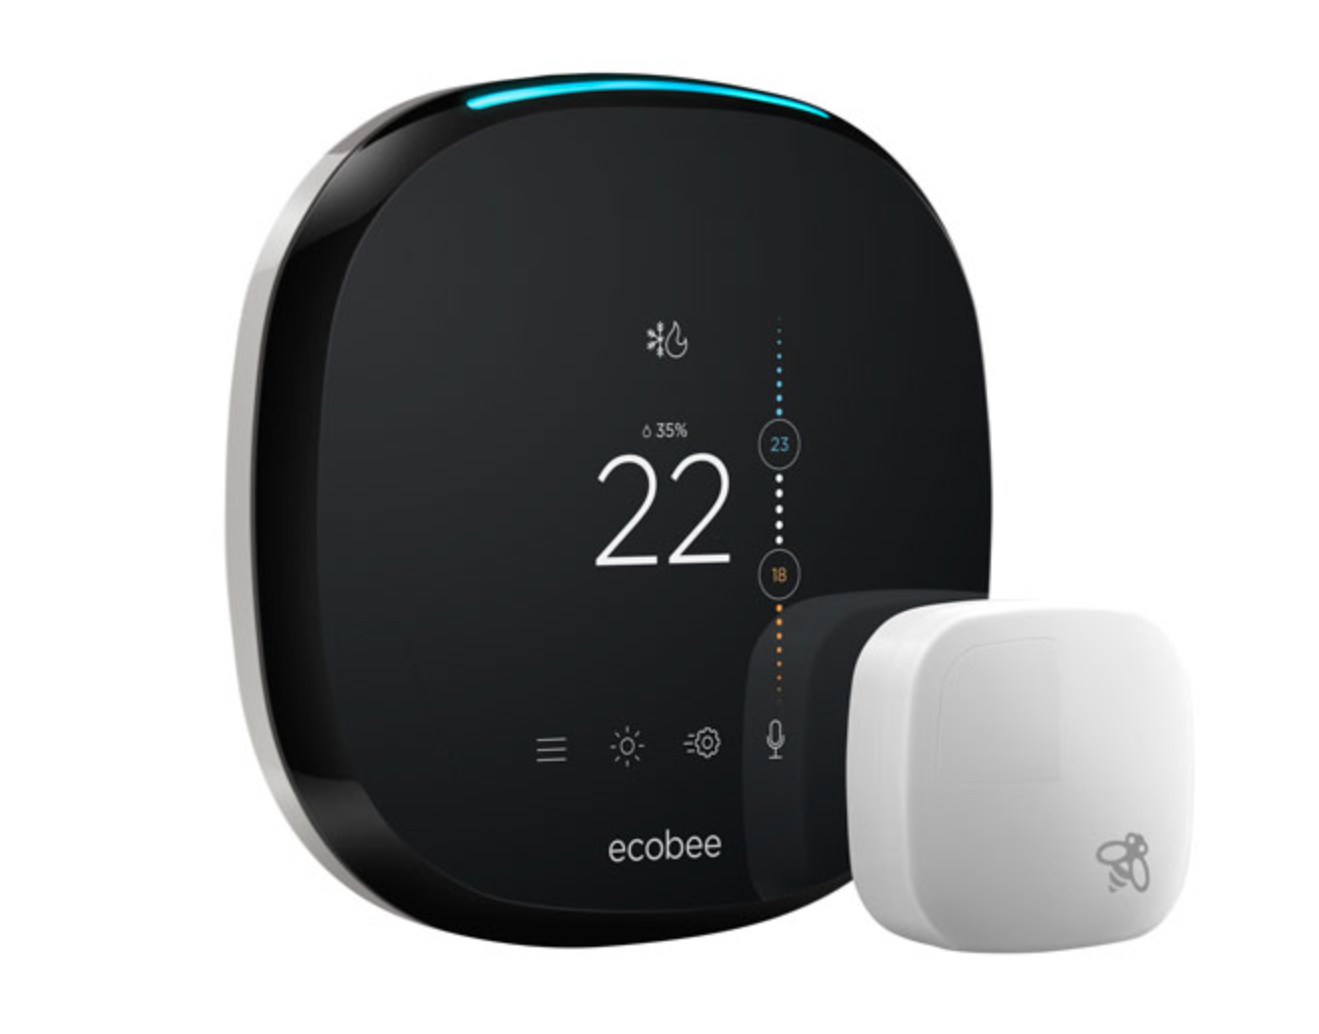 moving day - ecobee smart thermostat